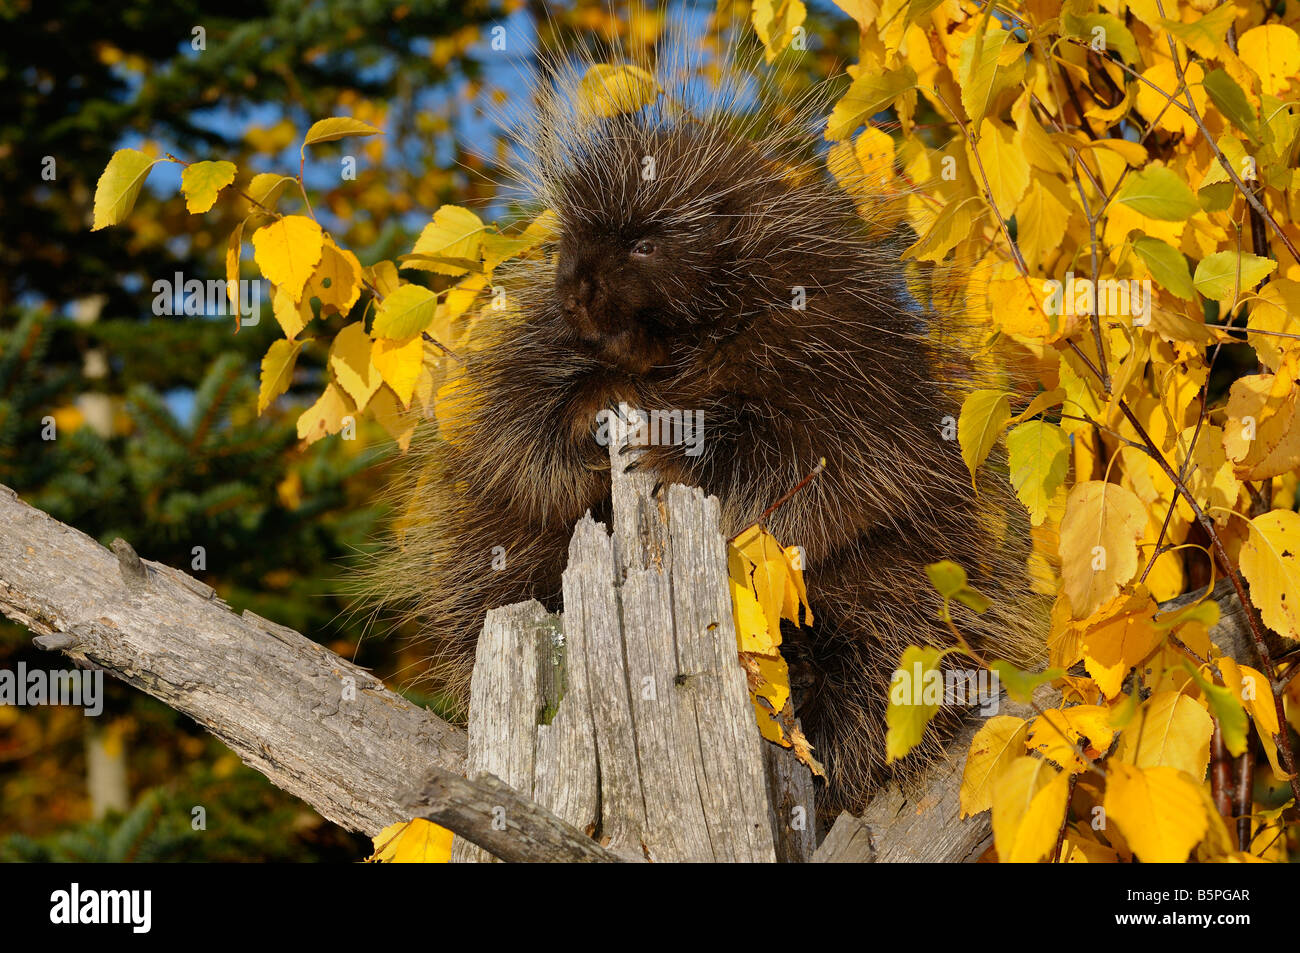 North American Porcupine climbing a dead tree with yellow Birch leaves and evergreens in Autumn Erethizon Dorsatum - Stock Image